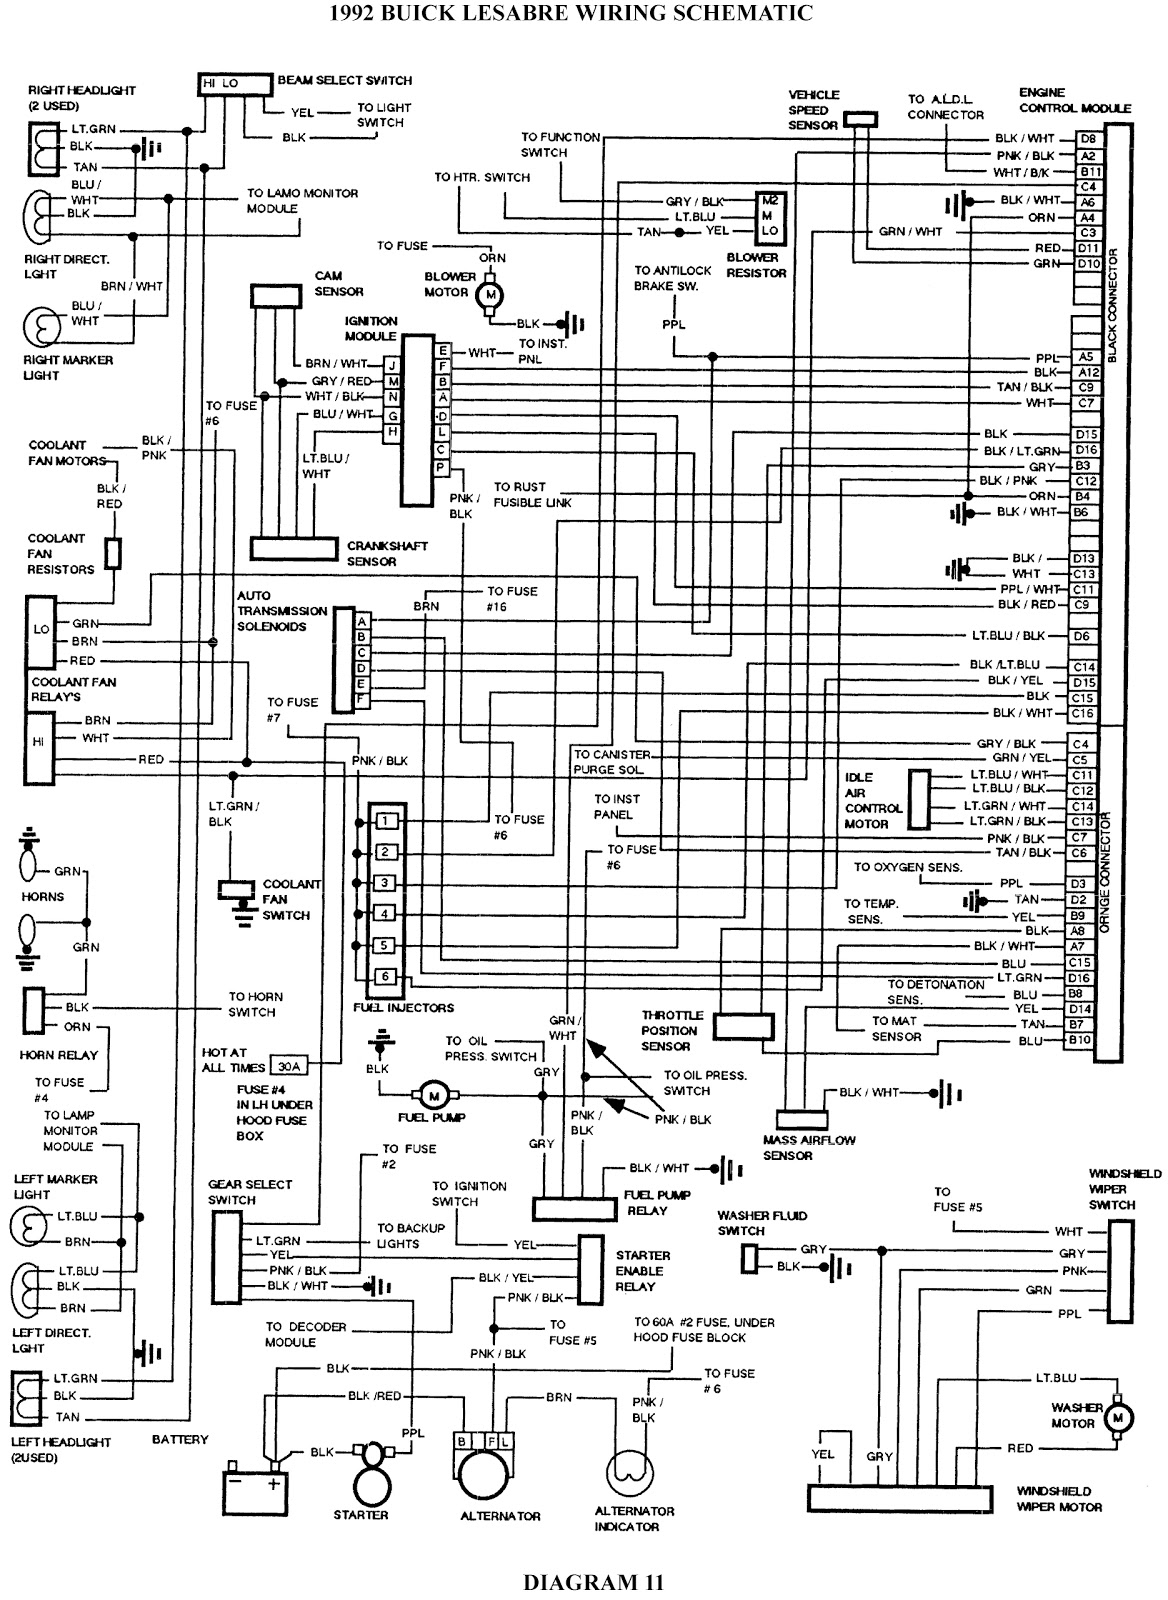 Diagram Buick Lesabre Fuse Diagram Full Version